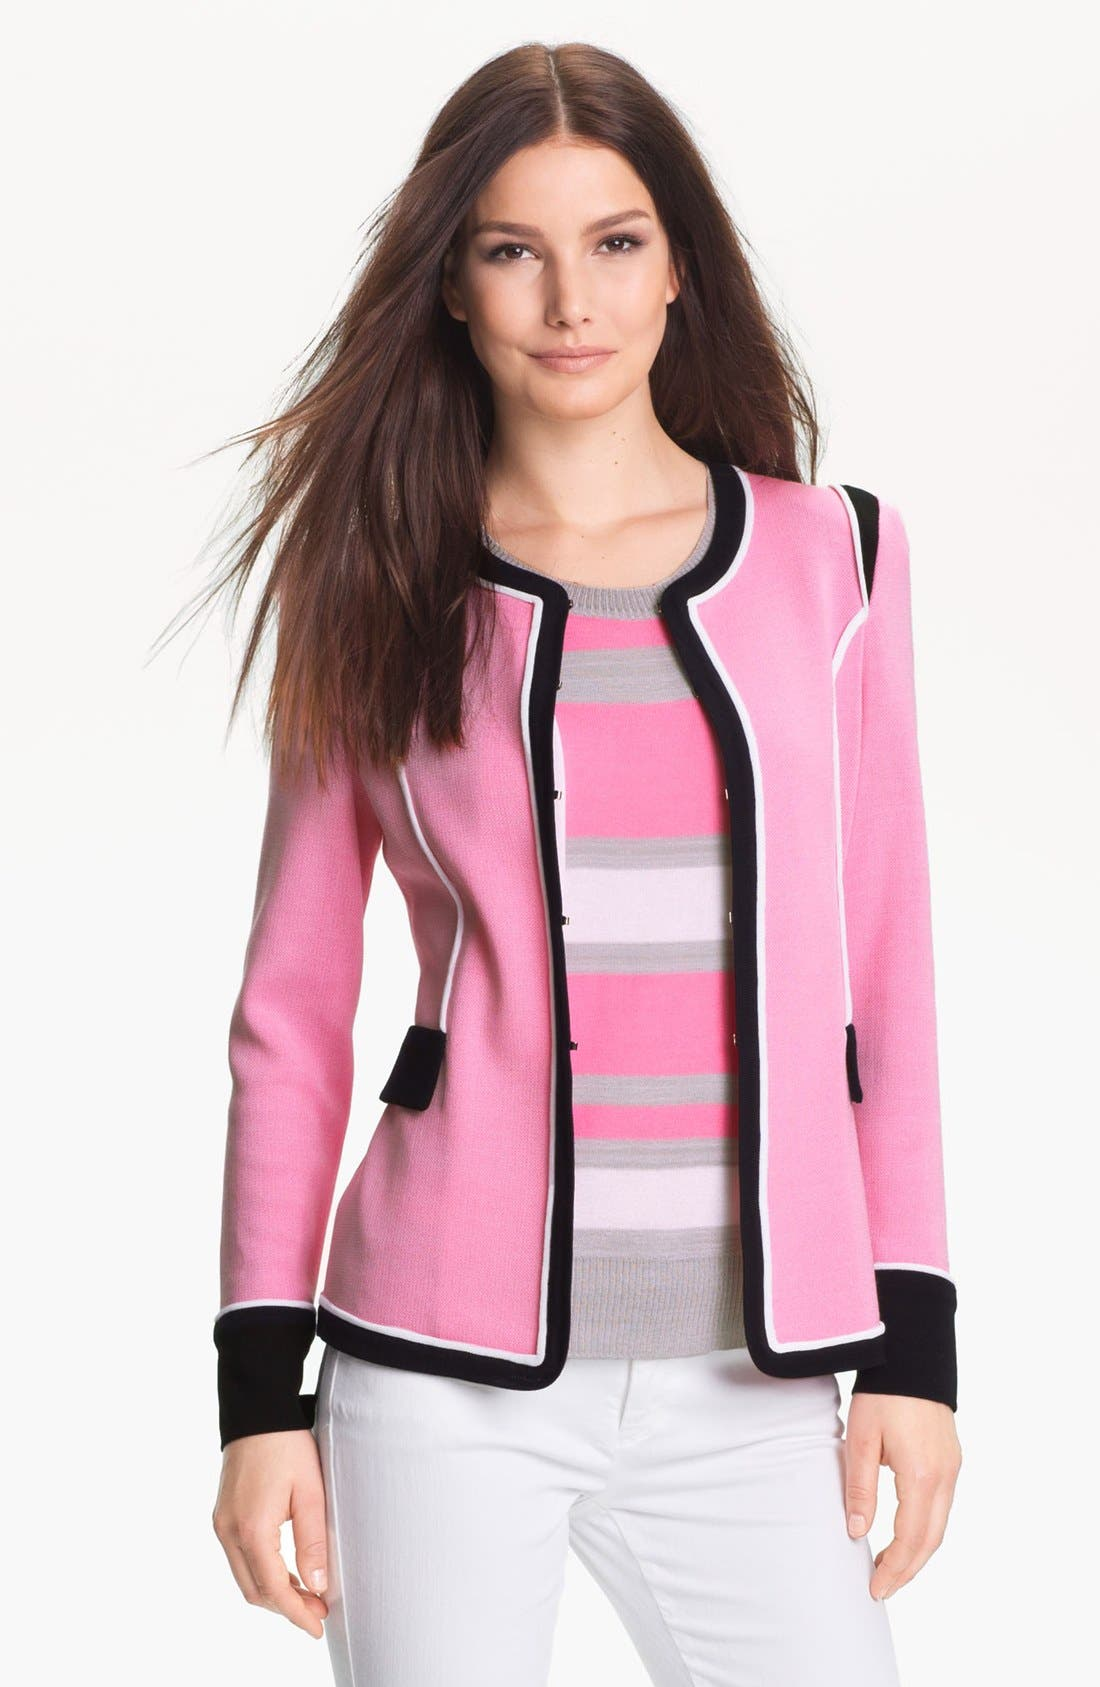 Alternate Image 1 Selected - Exclusively Misook 'Emily' Jacket (Petite) (Online Only)